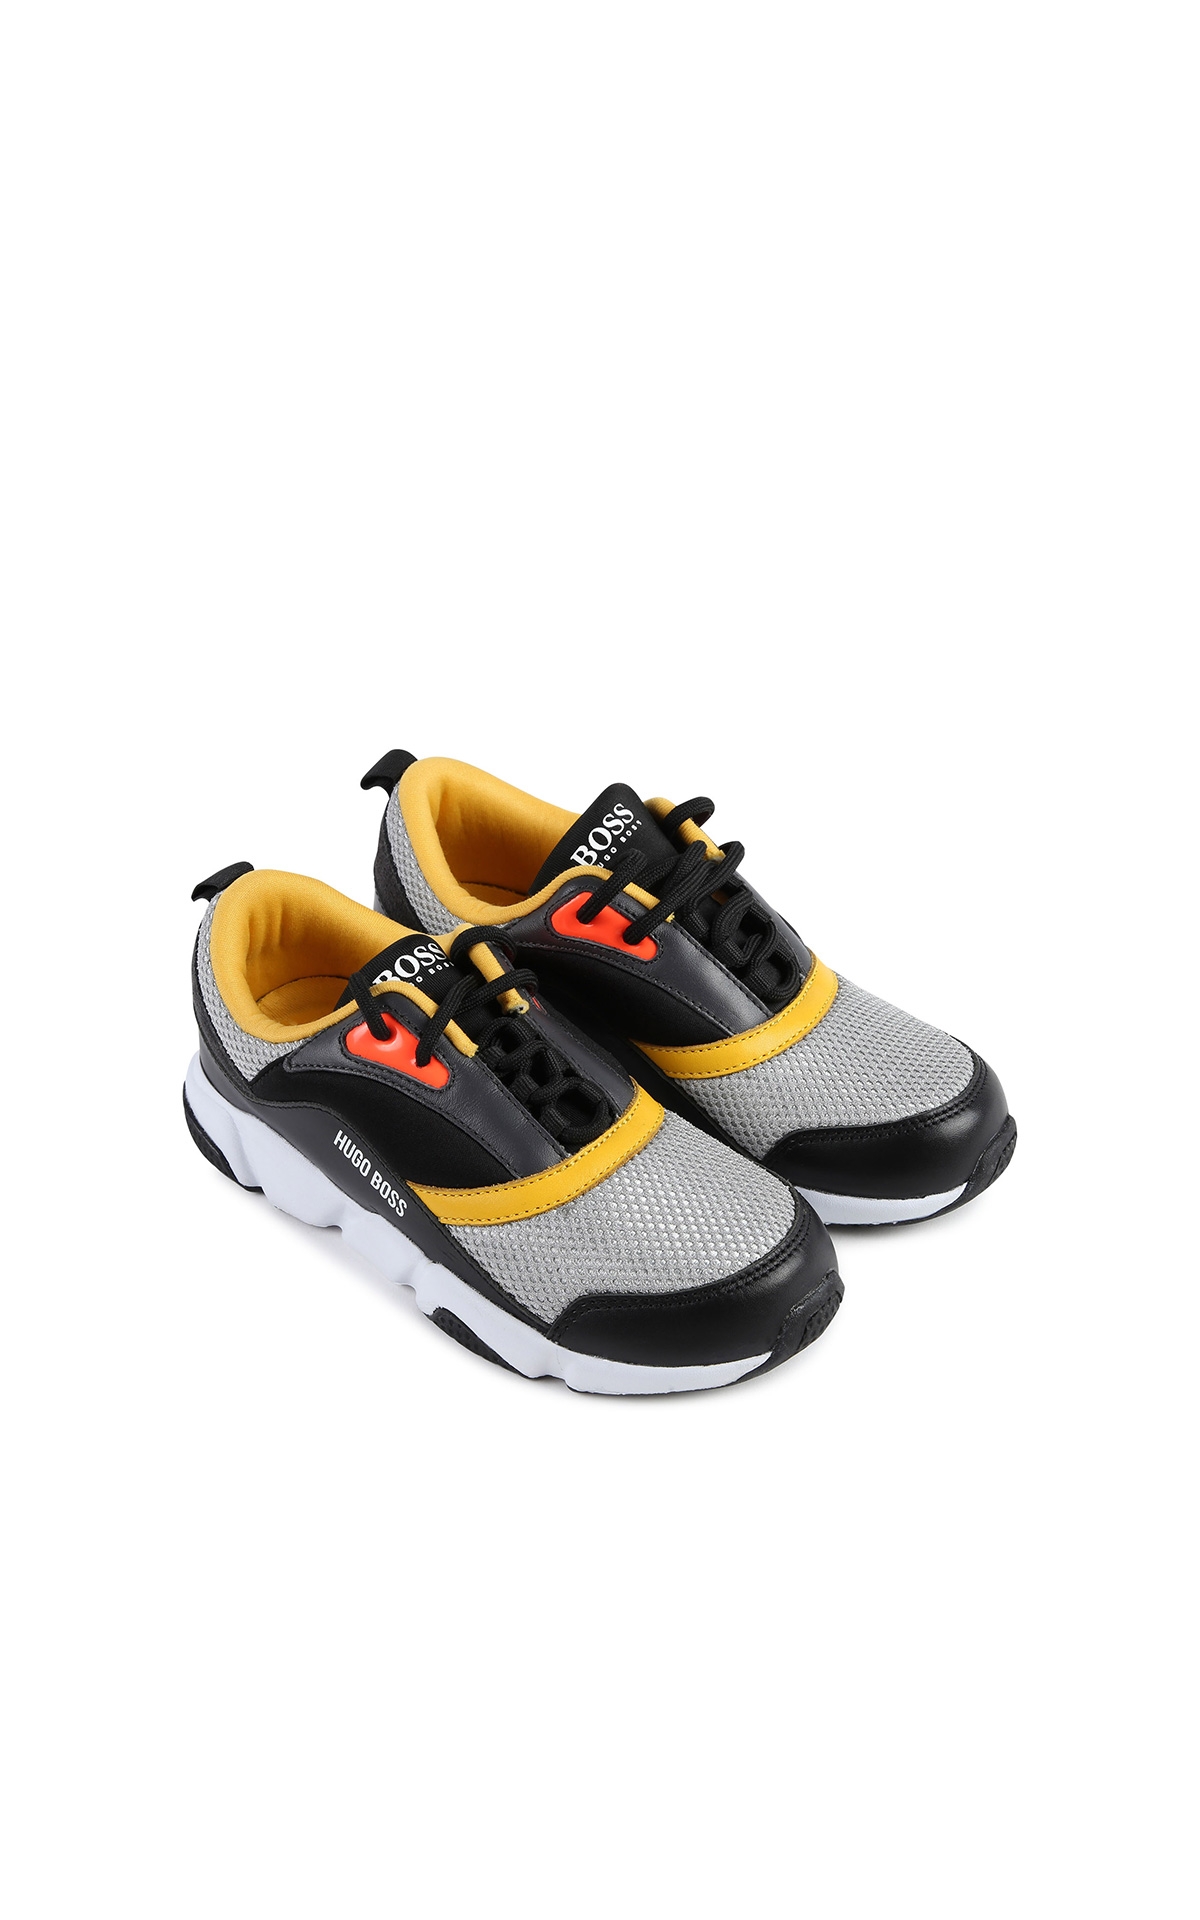 La Vallée Village BOSS Kidswear boy sneakers